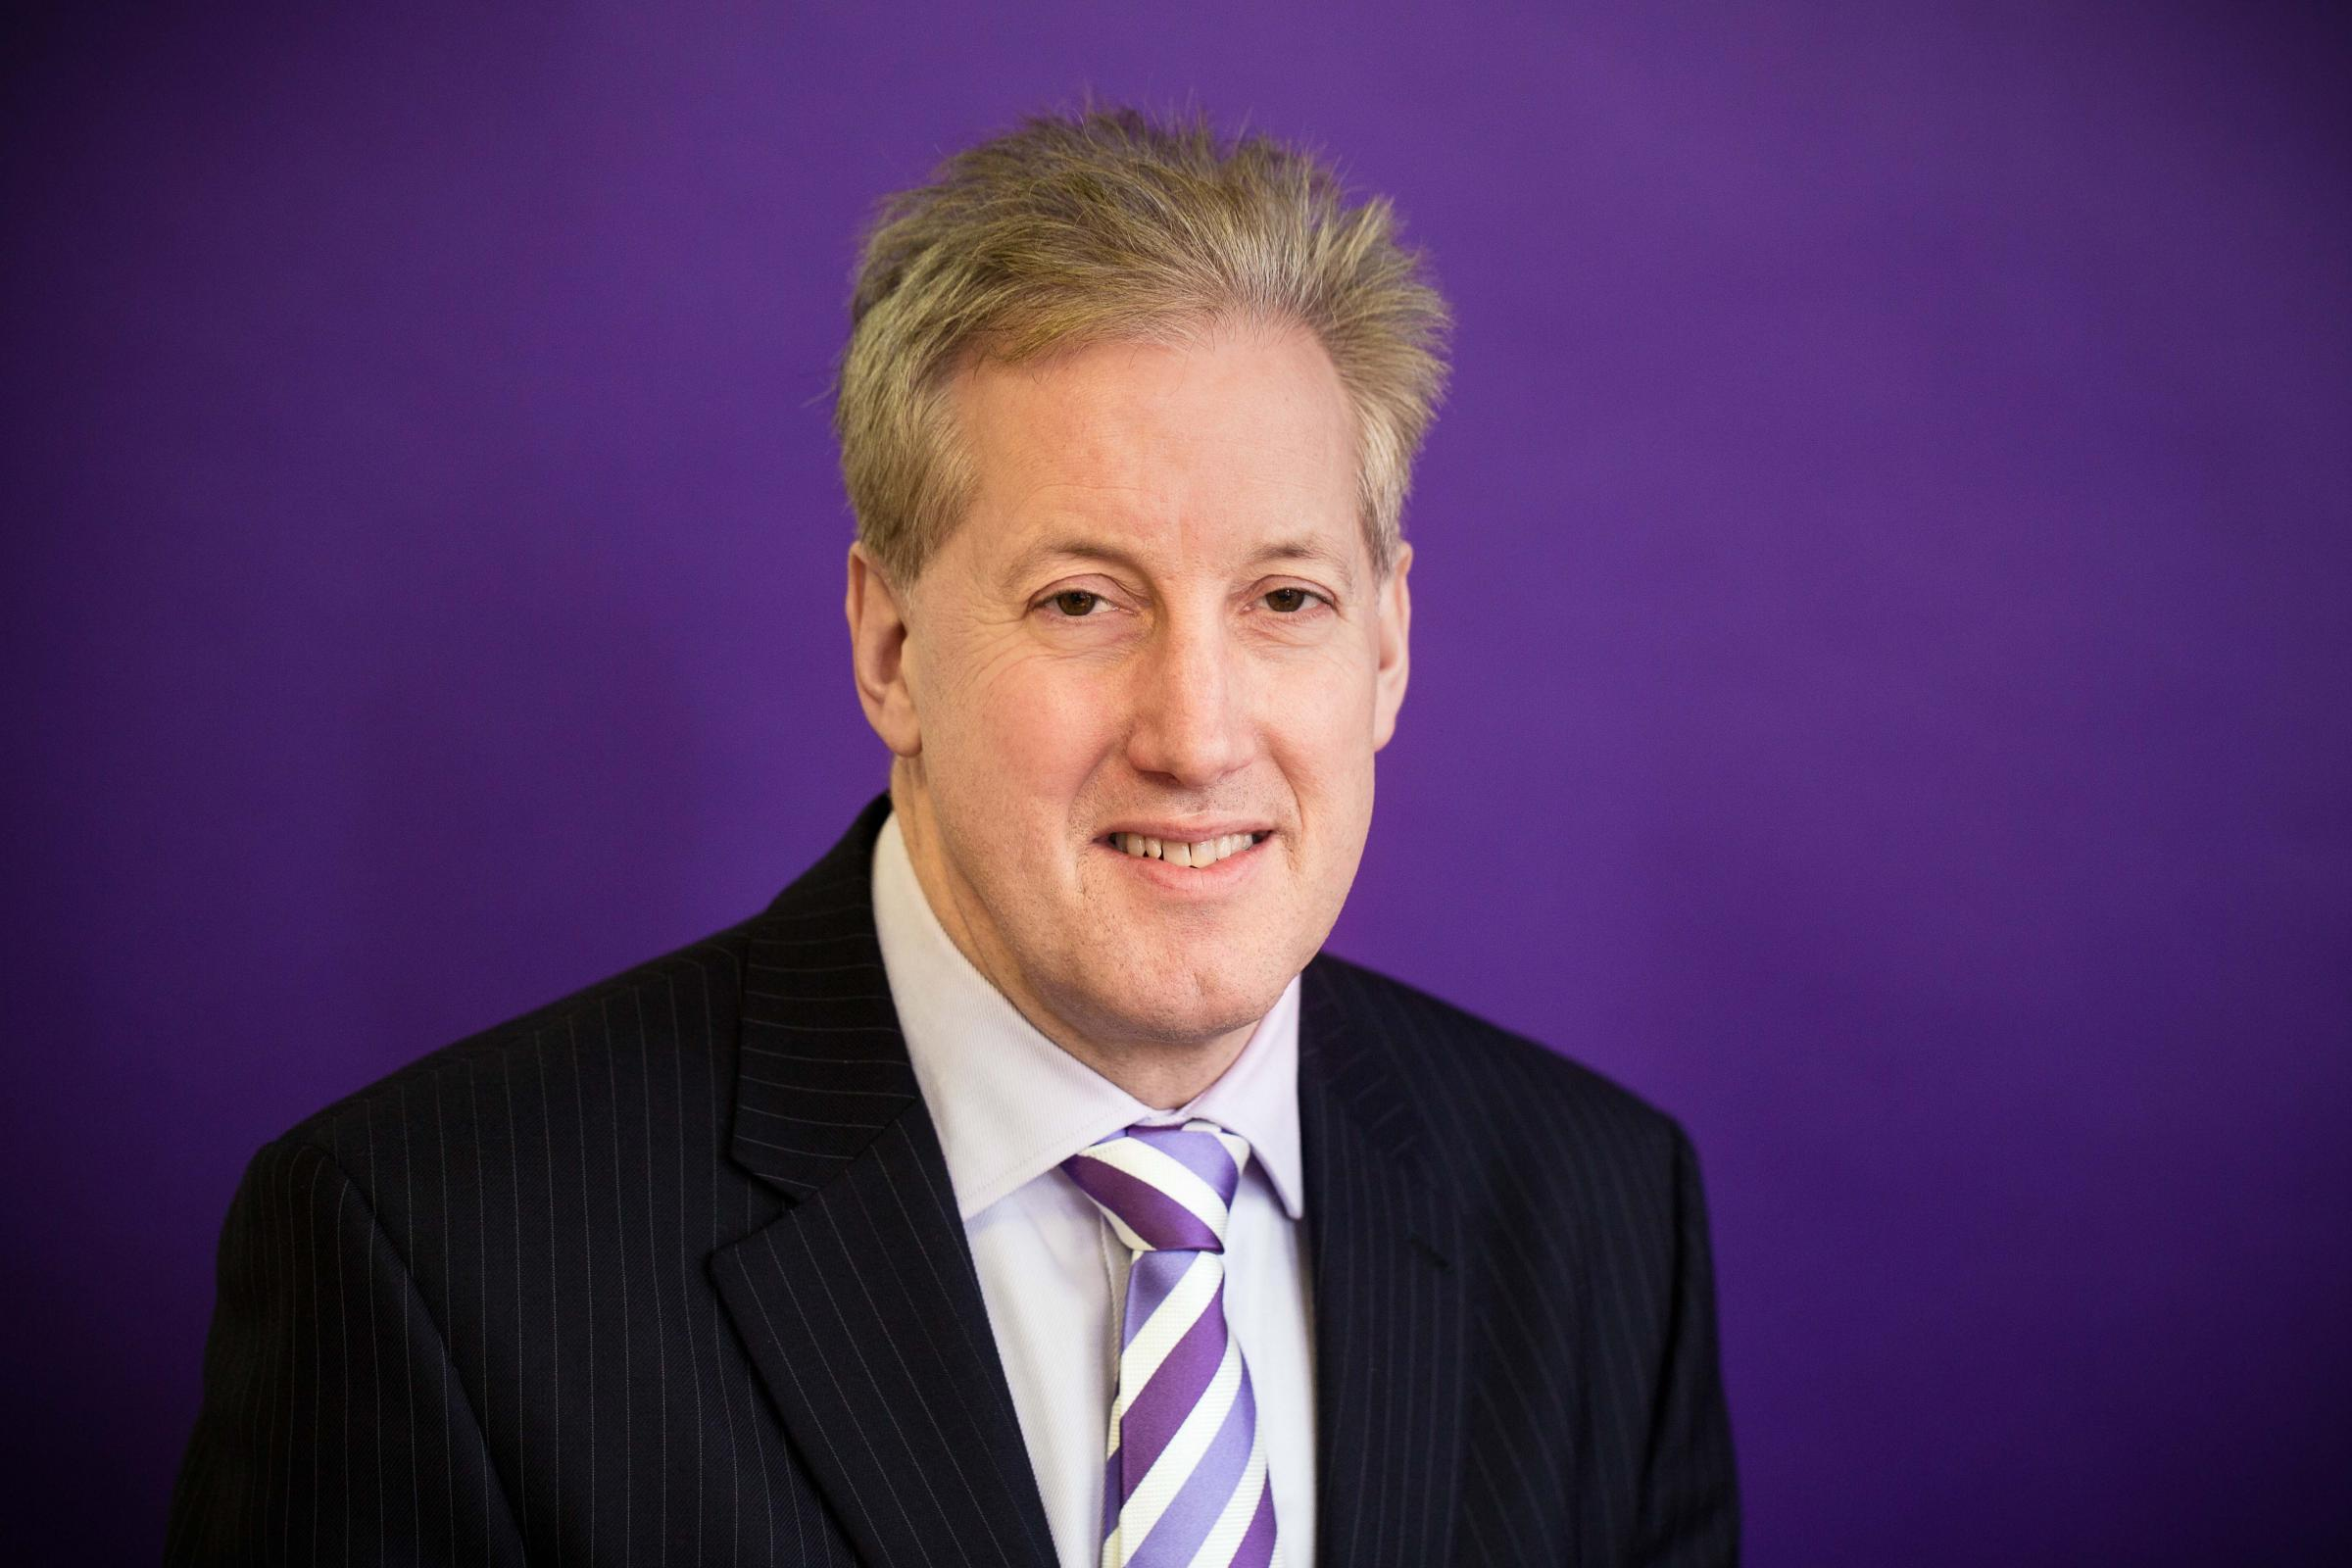 LAW: Nick O'Hara, managing director of Thursfields